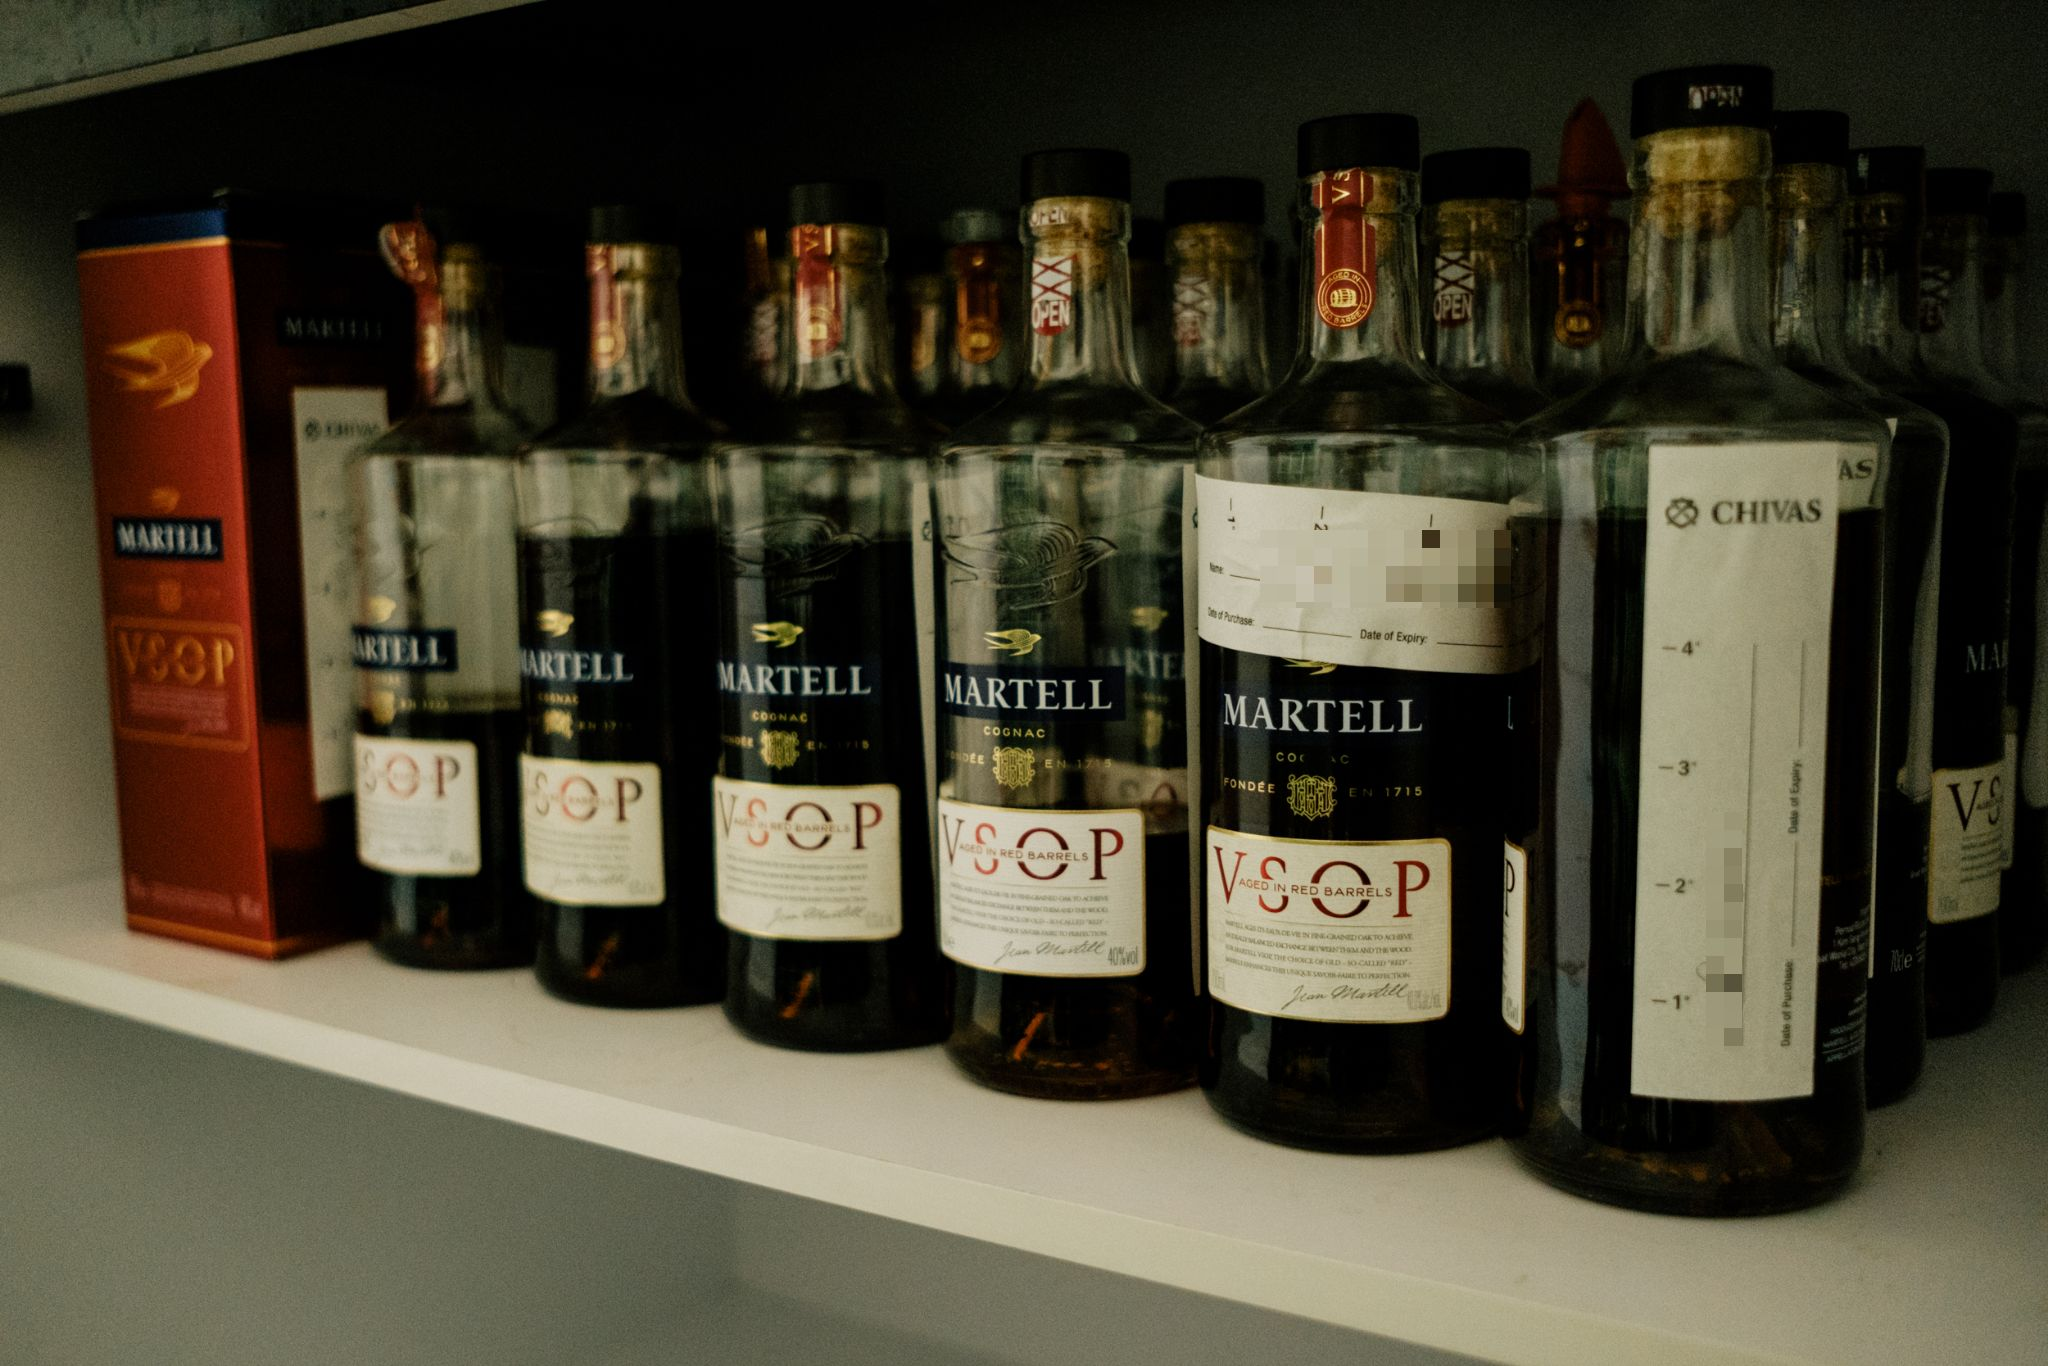 Image of bottles of liqour